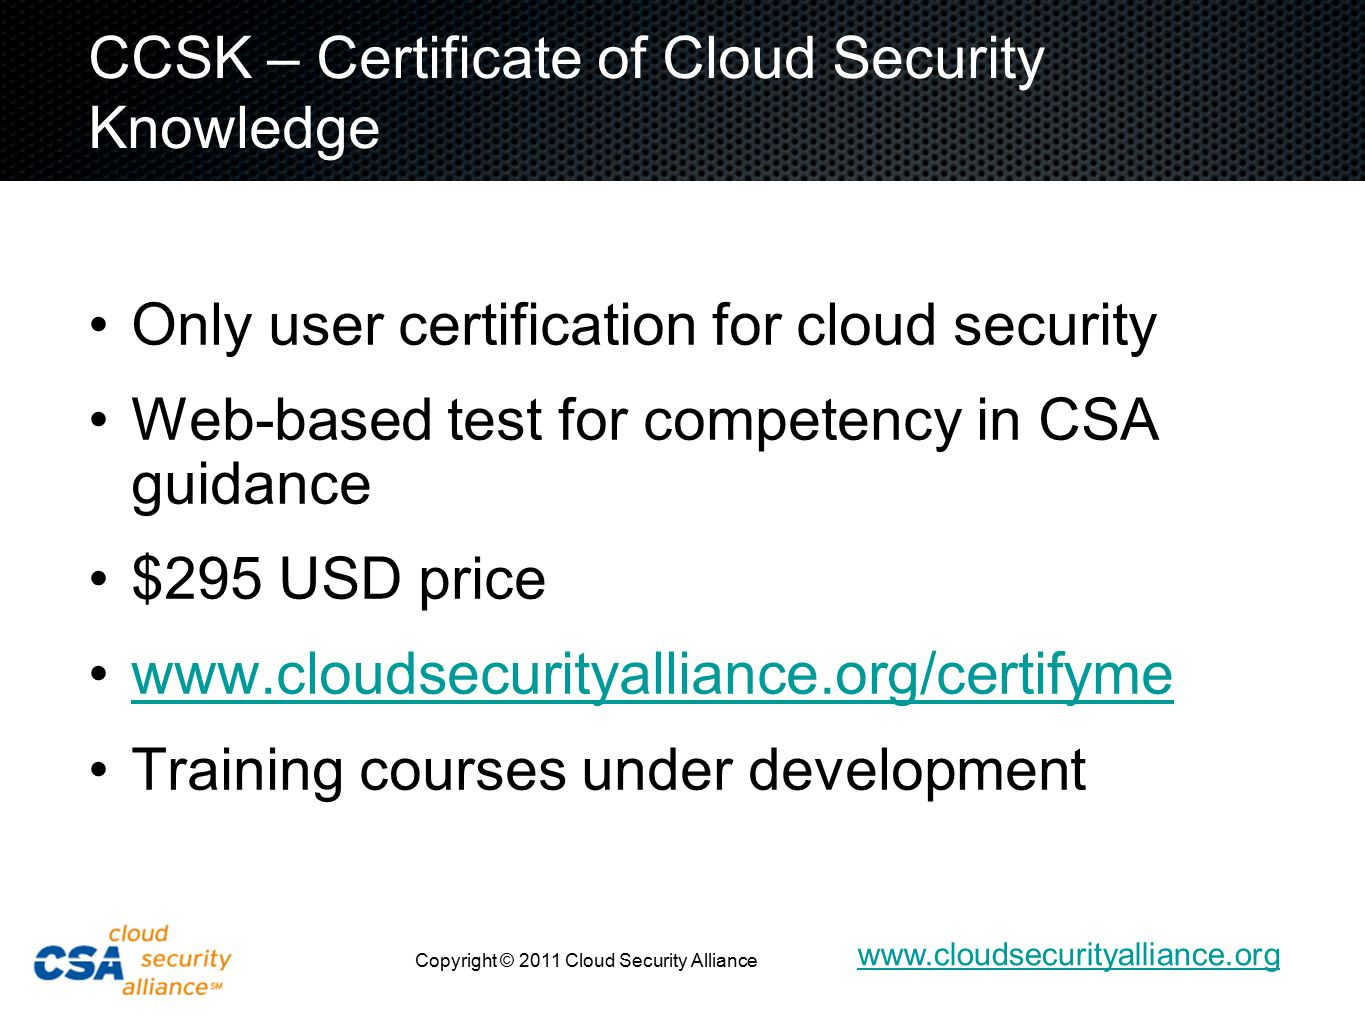 www.cloudsecurityalliance.org Copyright © 2011 Cloud Security Alliance CCSK – Certificate of Cloud Security Knowledge Only user certification for cloud security Web-based test for competency in CSA guidance $295 USD price www.cloudsecurityalliance.org/certifyme Training courses under development